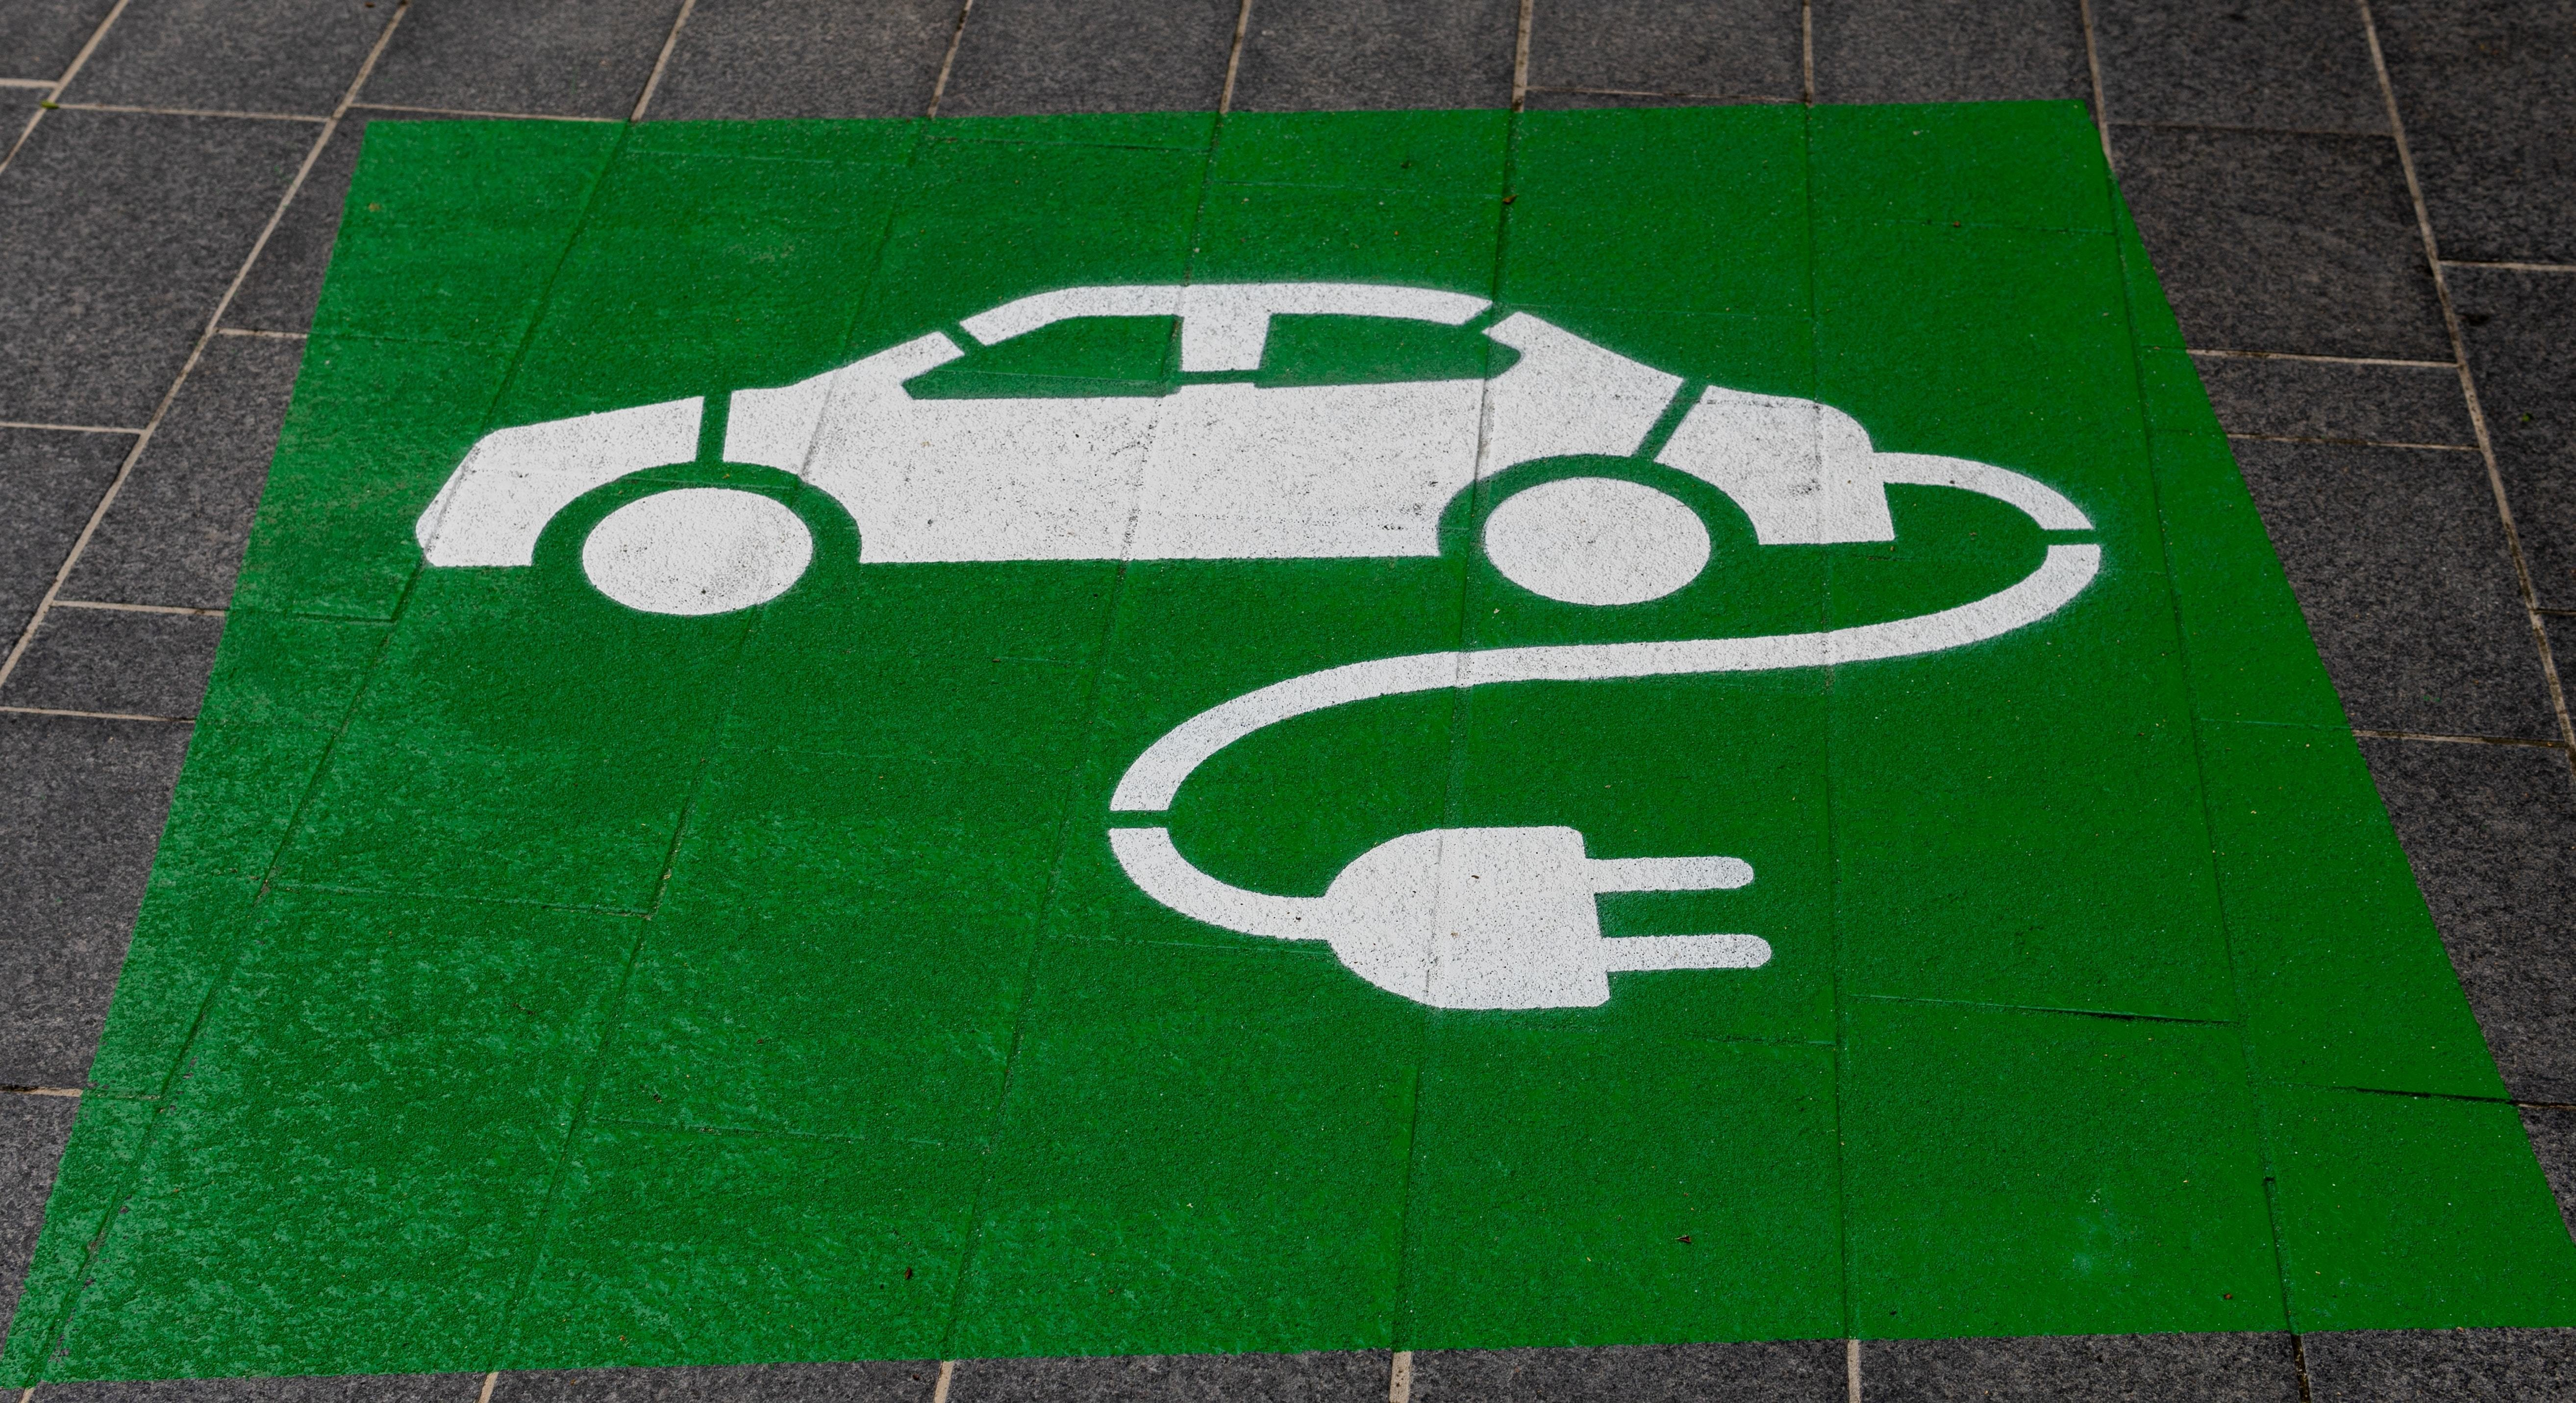 A symbol showing where electric vehicle owners can park to recharge their batteries. Photo by Michael Marais/Unsplash